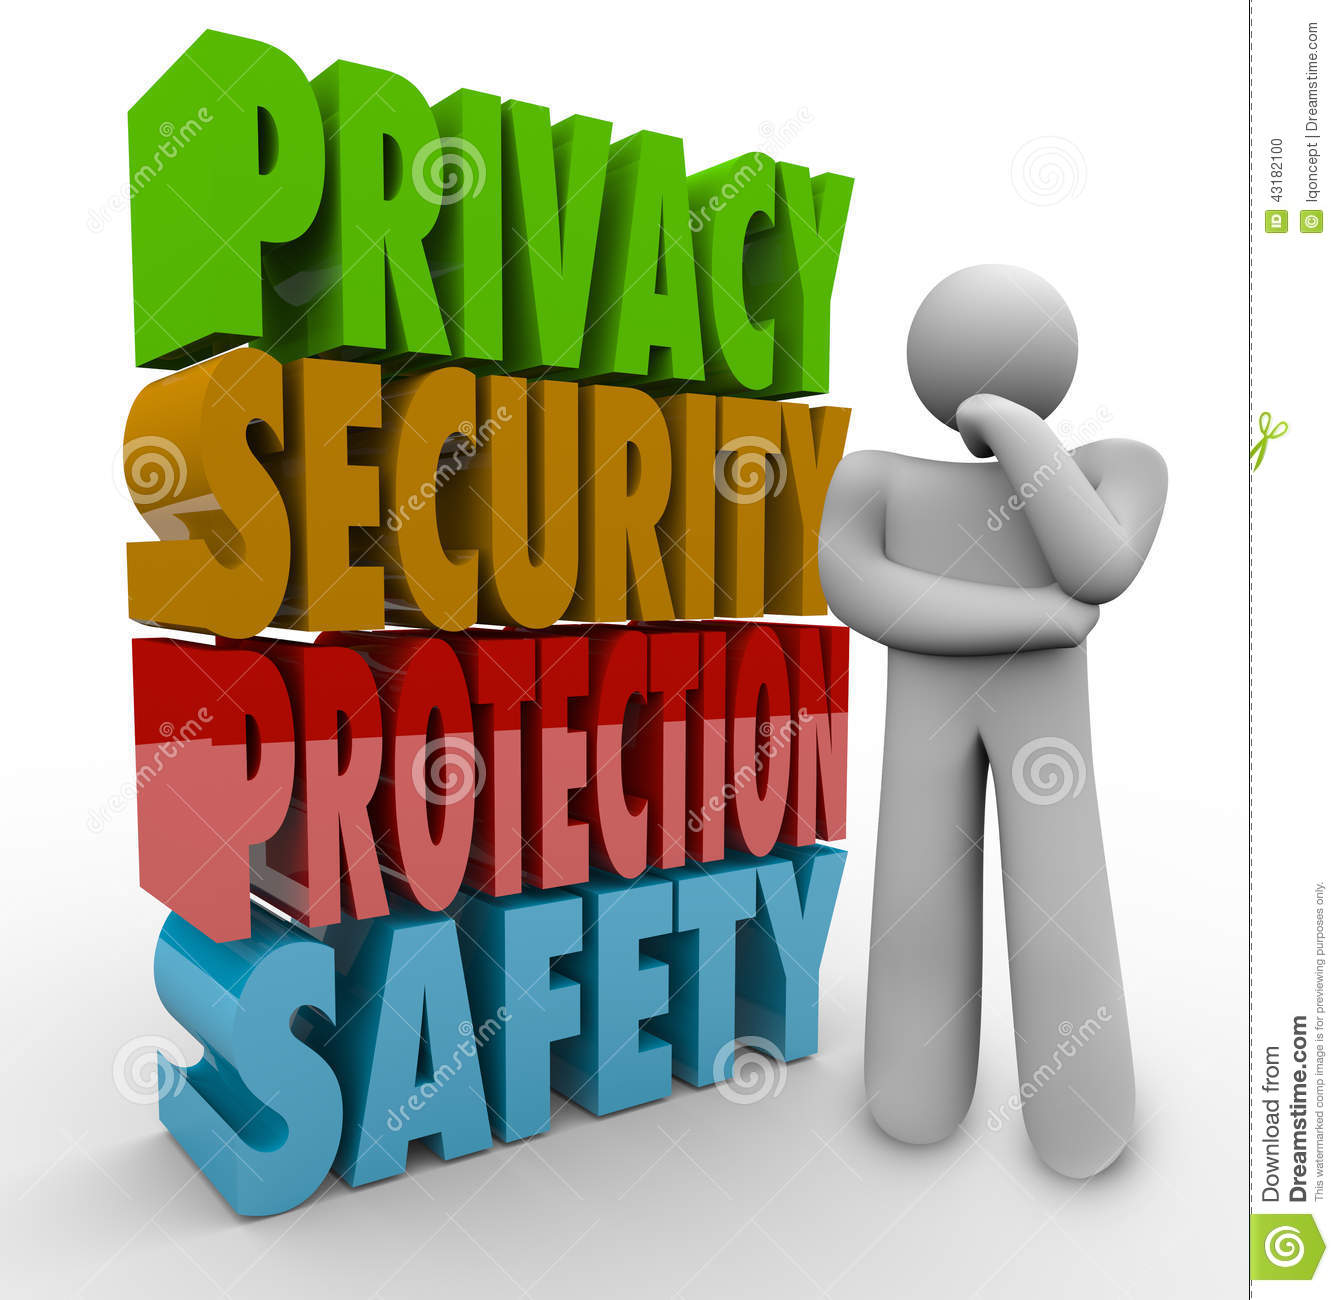 Privacy Security Protection Safety Thinker 3d Words Stock Illustration ...: www.dreamstime.com/stock-illustration-privacy-security-protection...